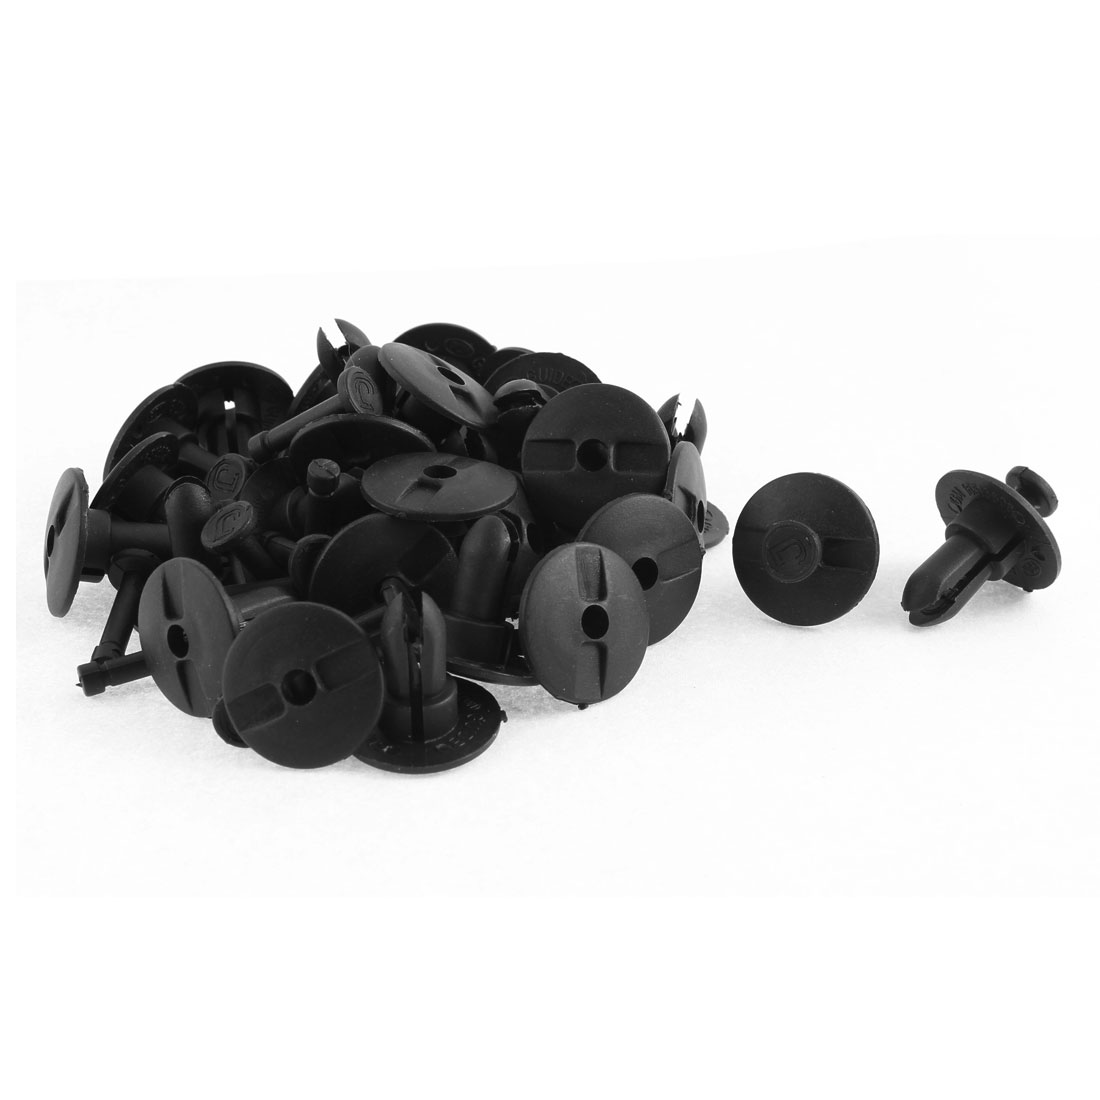 30 Pcs Black Plastic Push-Type Trim Buckle Moulding Rivet for Buick